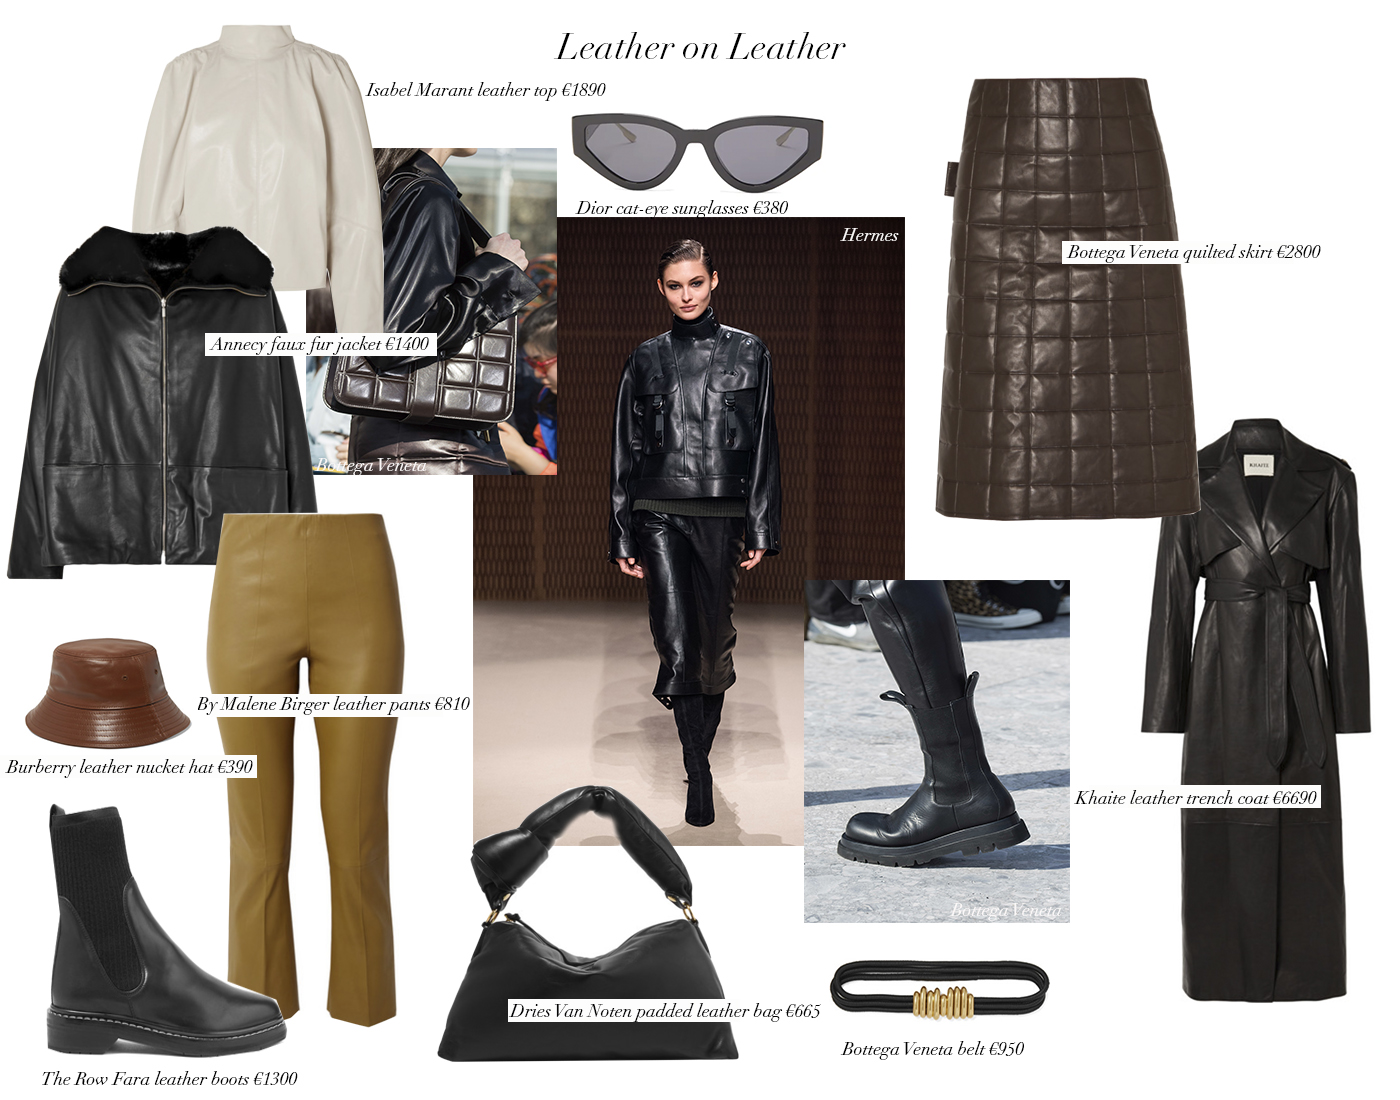 Trini | Leather on leather